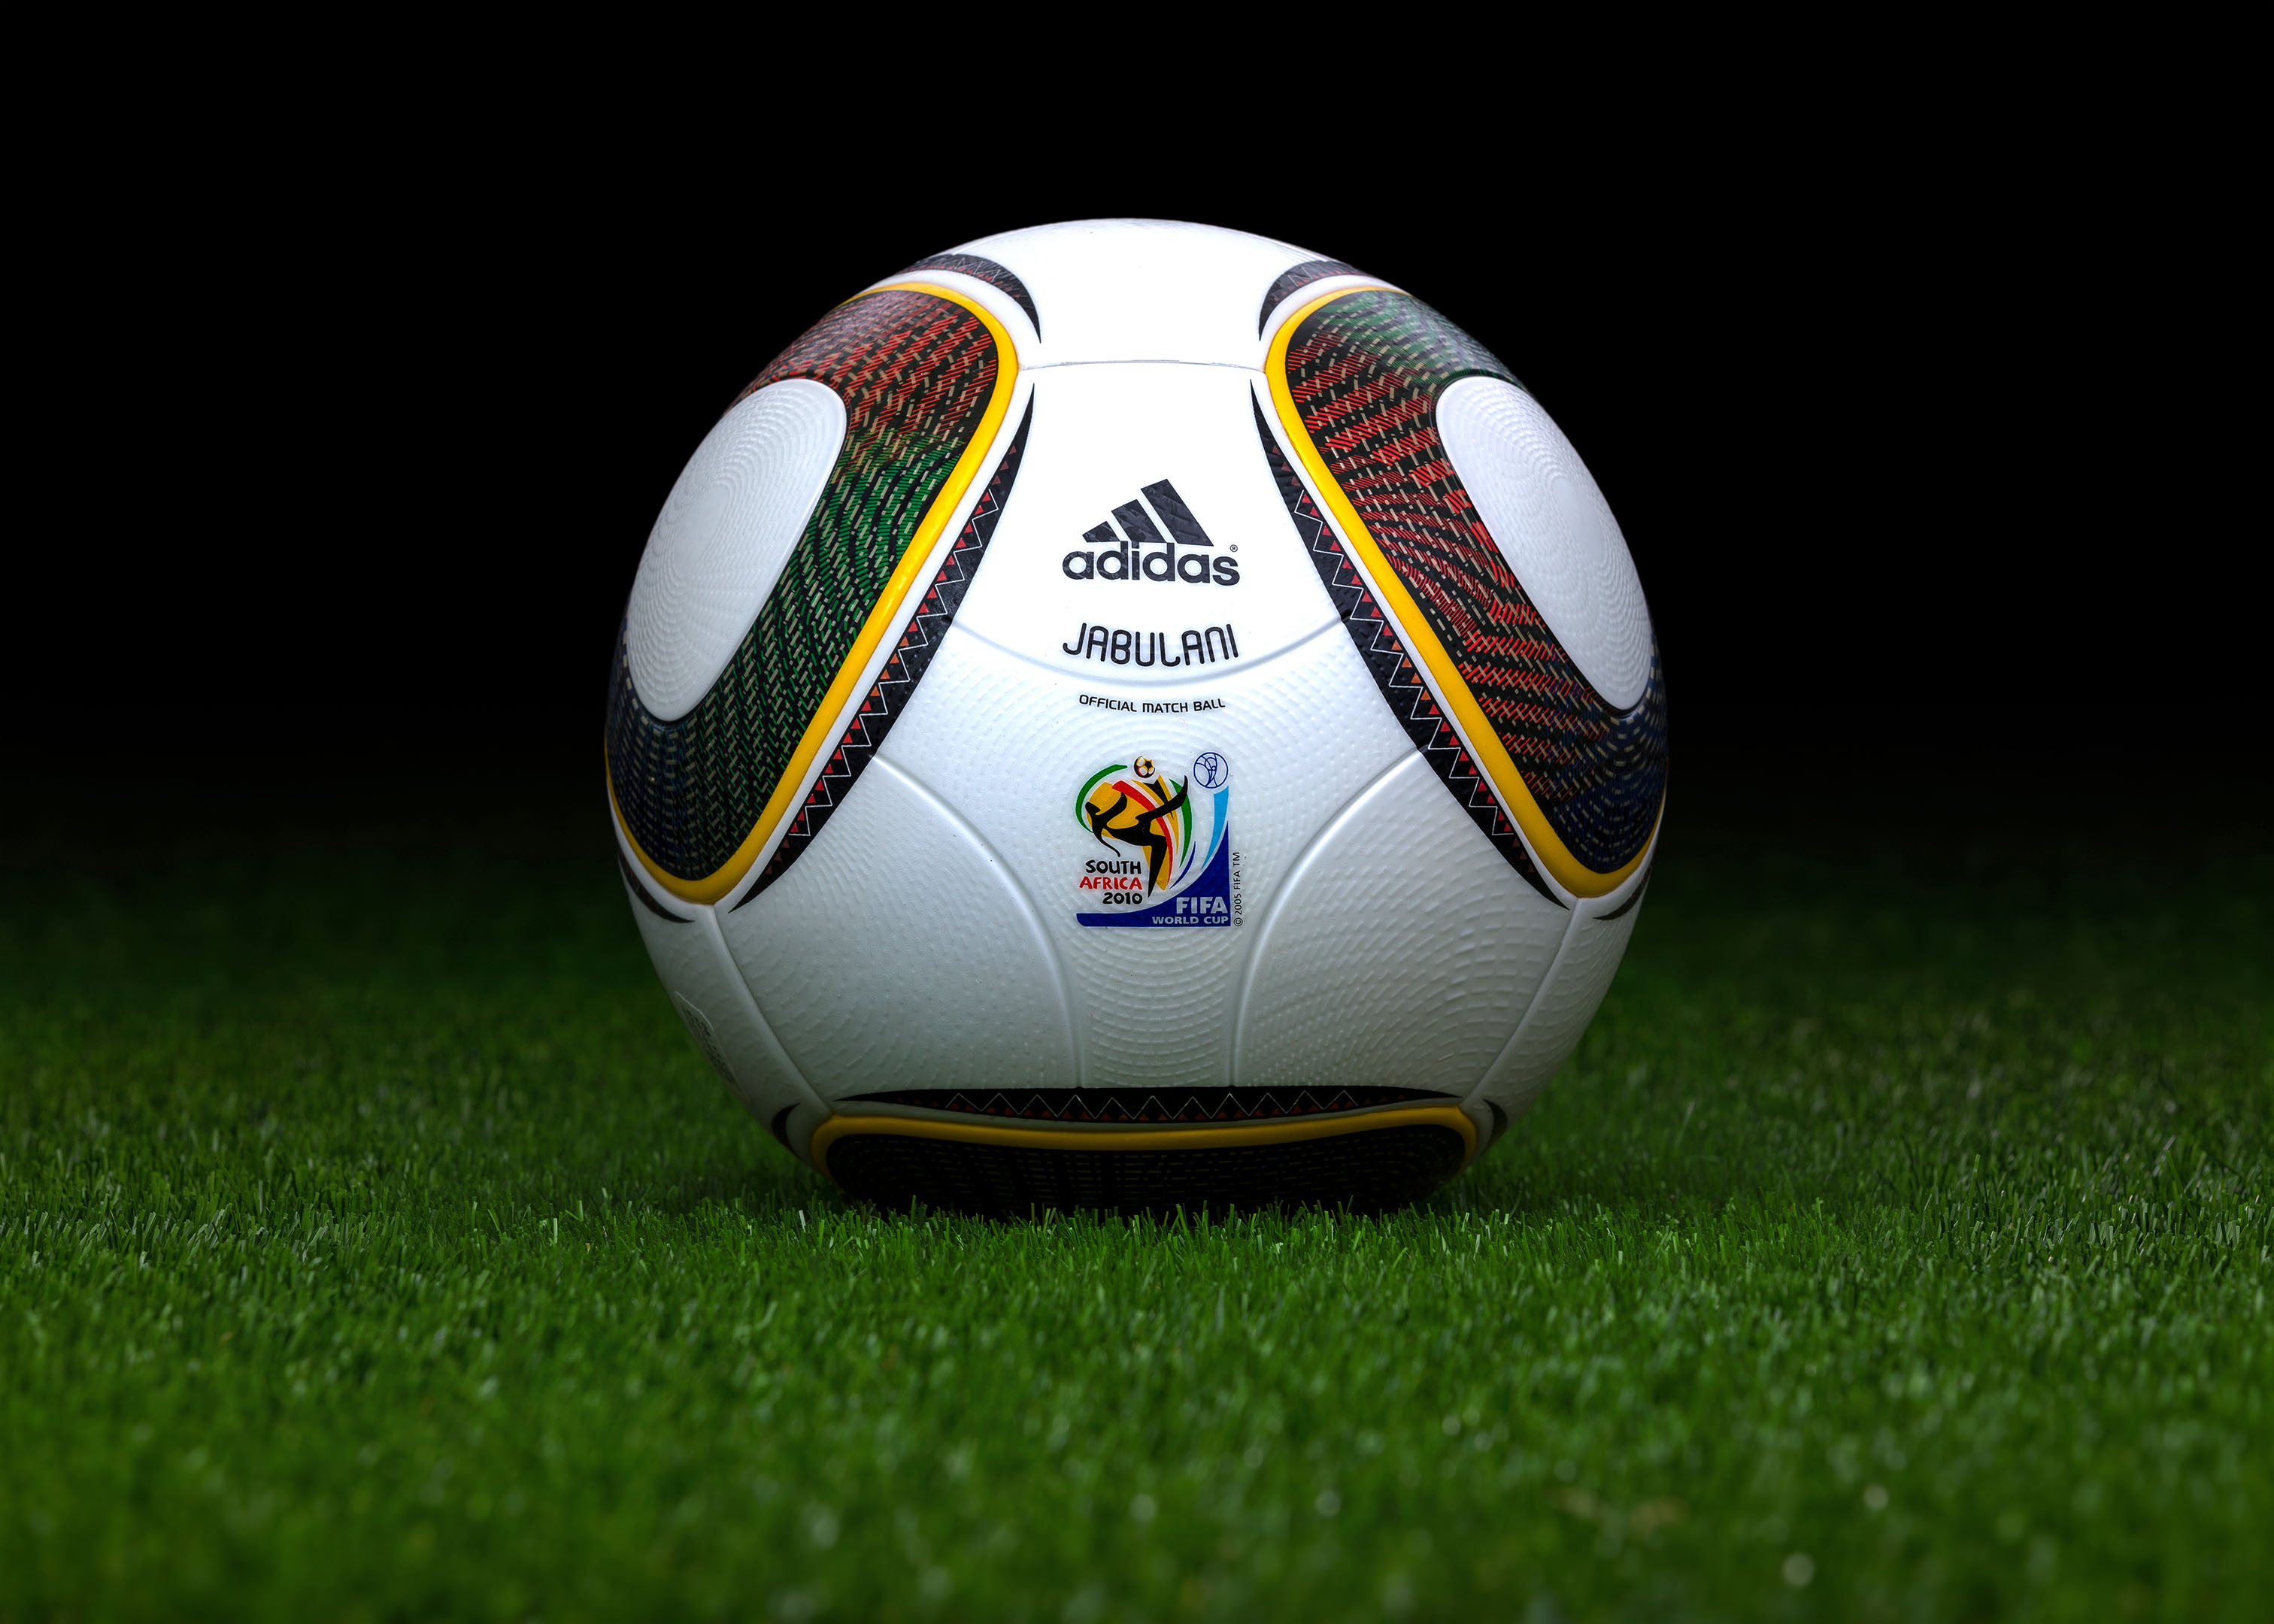 super popular 147e6 b95eb Made in China match ball. FIFA World Cup 2010 South Africa. Adidas Jabulani